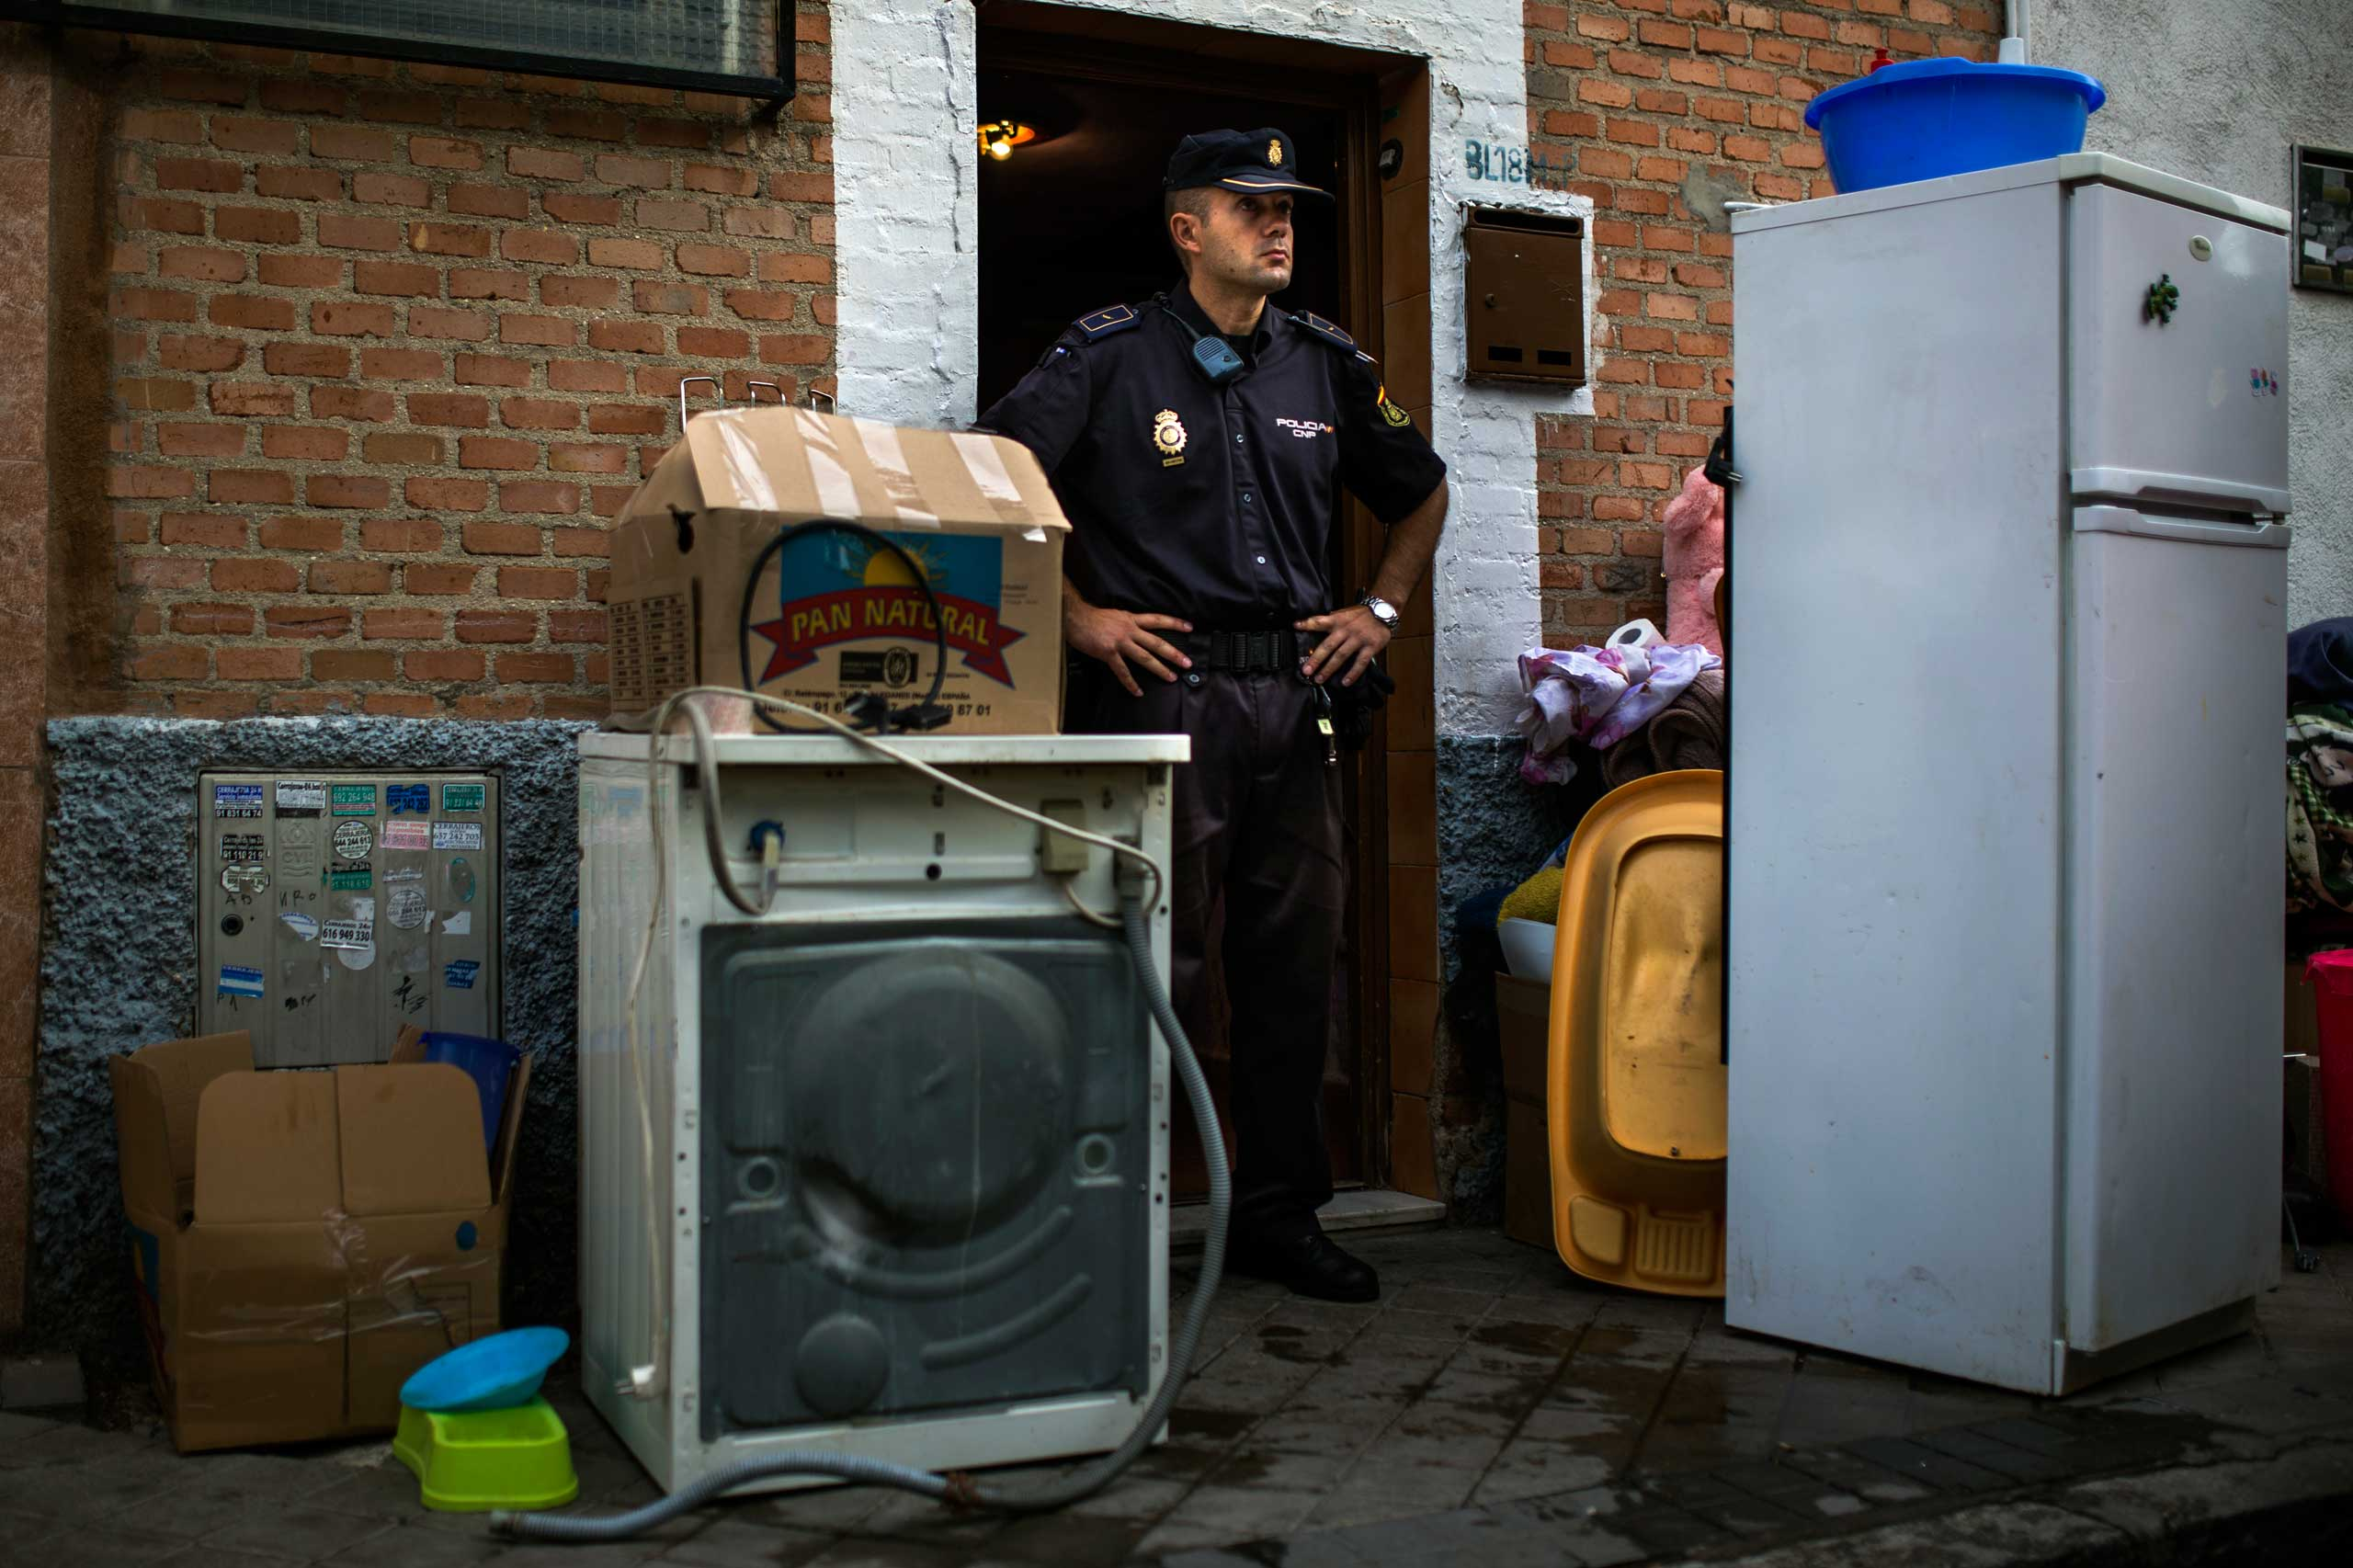 Police block the apartment's entrance  as Amalio Barrul Gimenez's belongings lay on the street after his family got evicted in Madrid. June 2014.